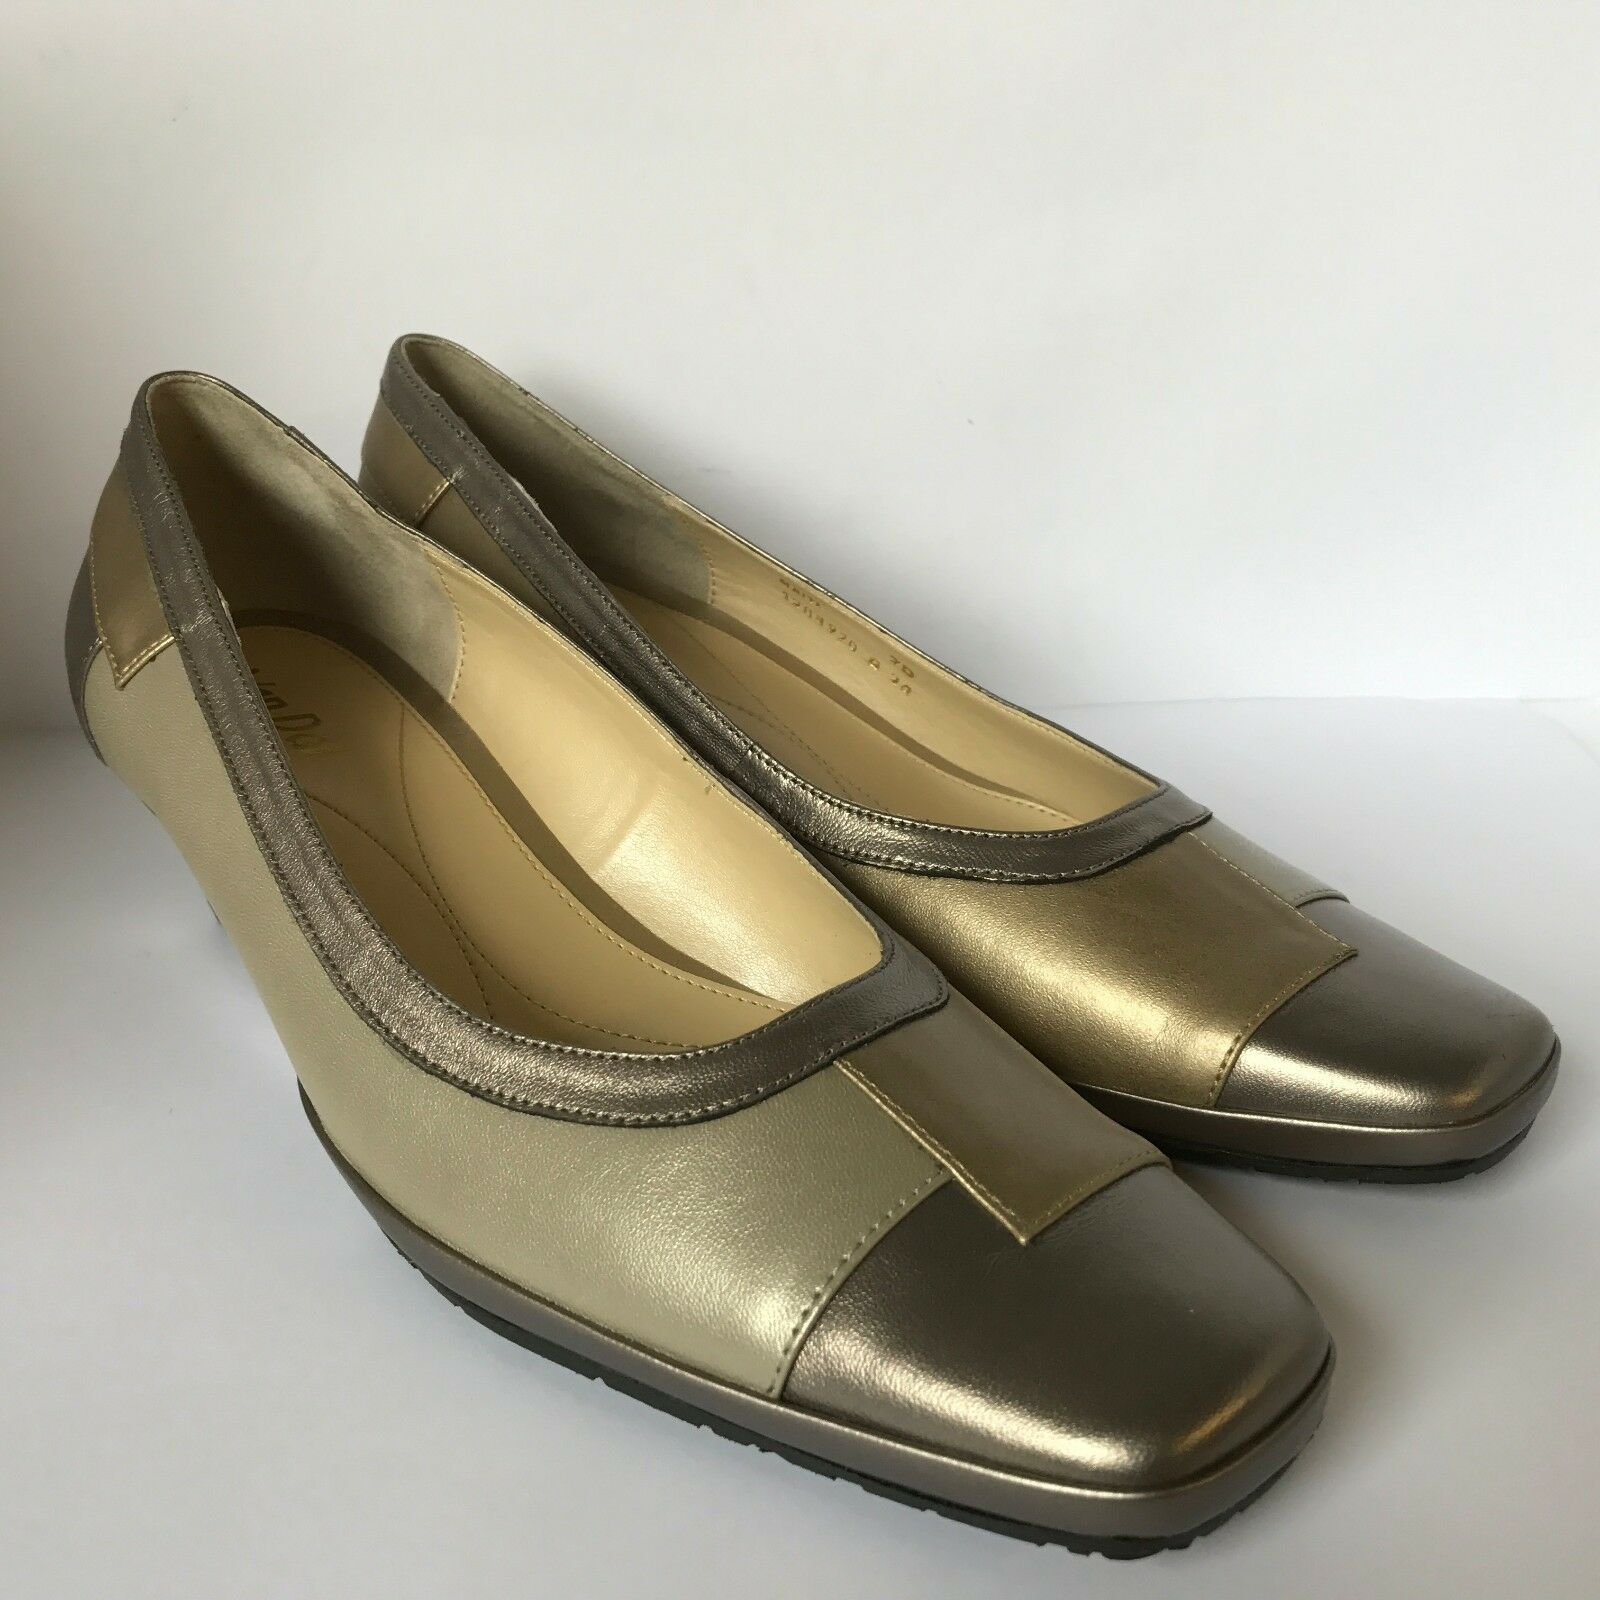 Van Dal Haiti Wedge shoes Metal-Oyster-gold Size 7 UK D Width New